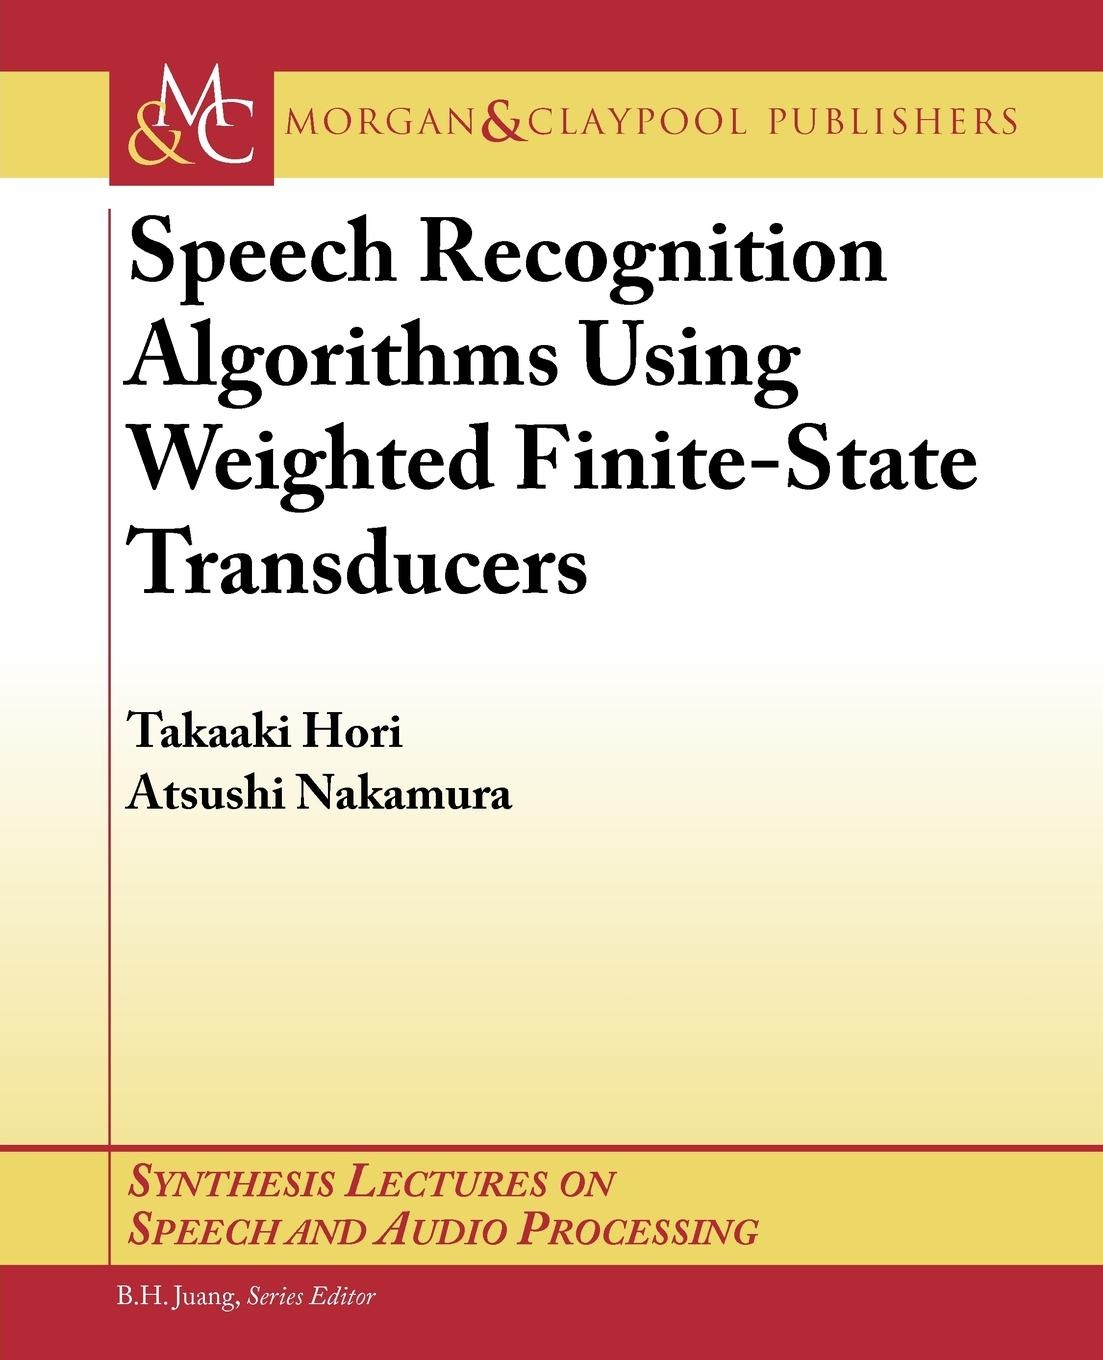 Takaaki Hori, Atsushi Nakamura Speech Recognition Algorithms based on Weighted Finite-State Transducers keshet joseph automatic speech and speaker recognition large margin and kernel methods